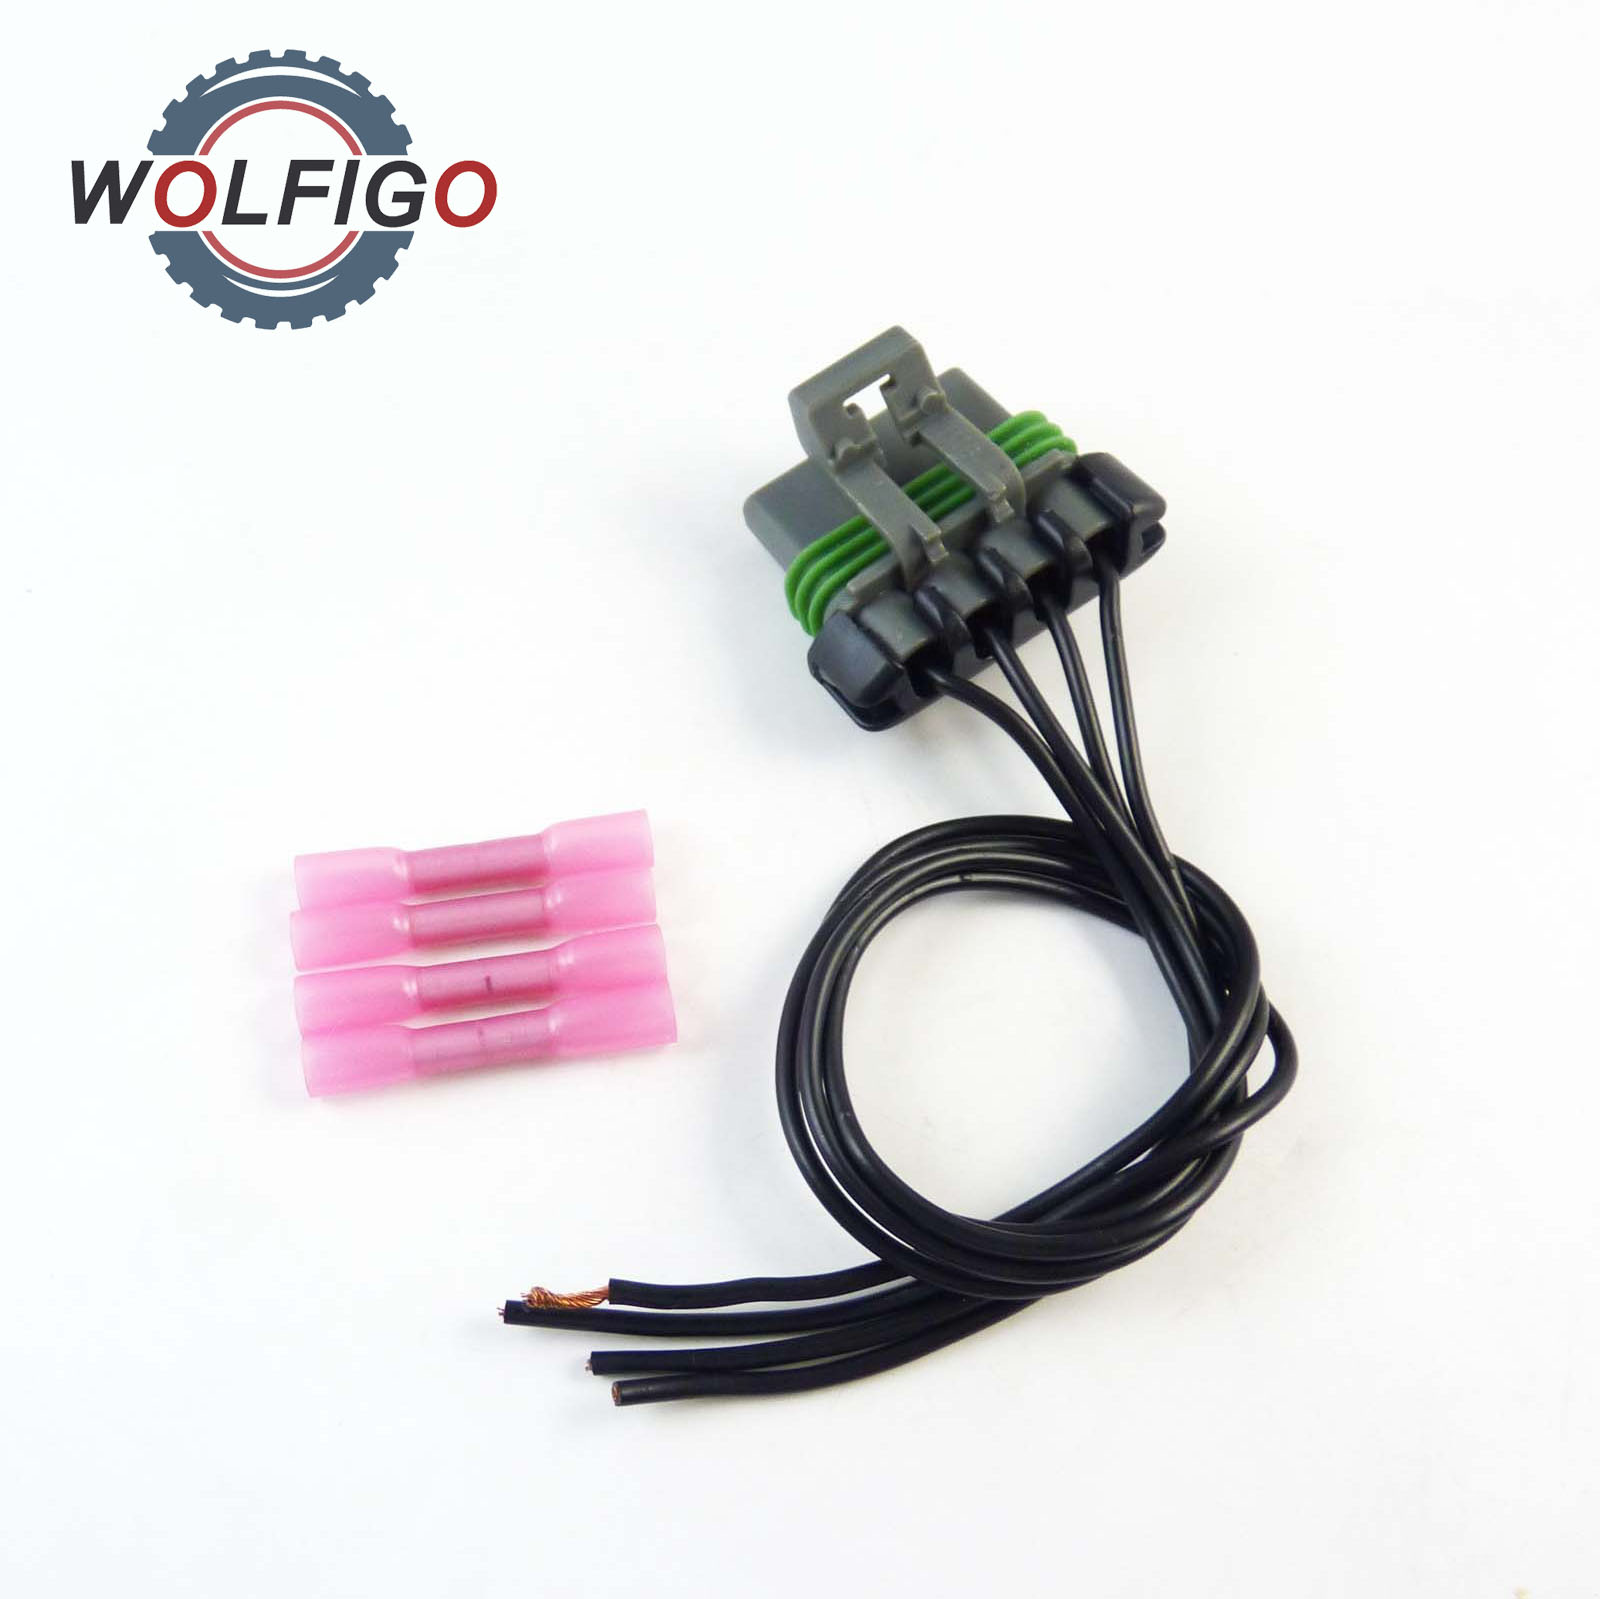 Wolfigo New 5pcs Ser For Chevrolet Colorado Gmc Canyon Blower Motor Electrical Wiring 2005 Hvac Resistor Connector Pigtail Harness Fit 1p1560 Pt5909